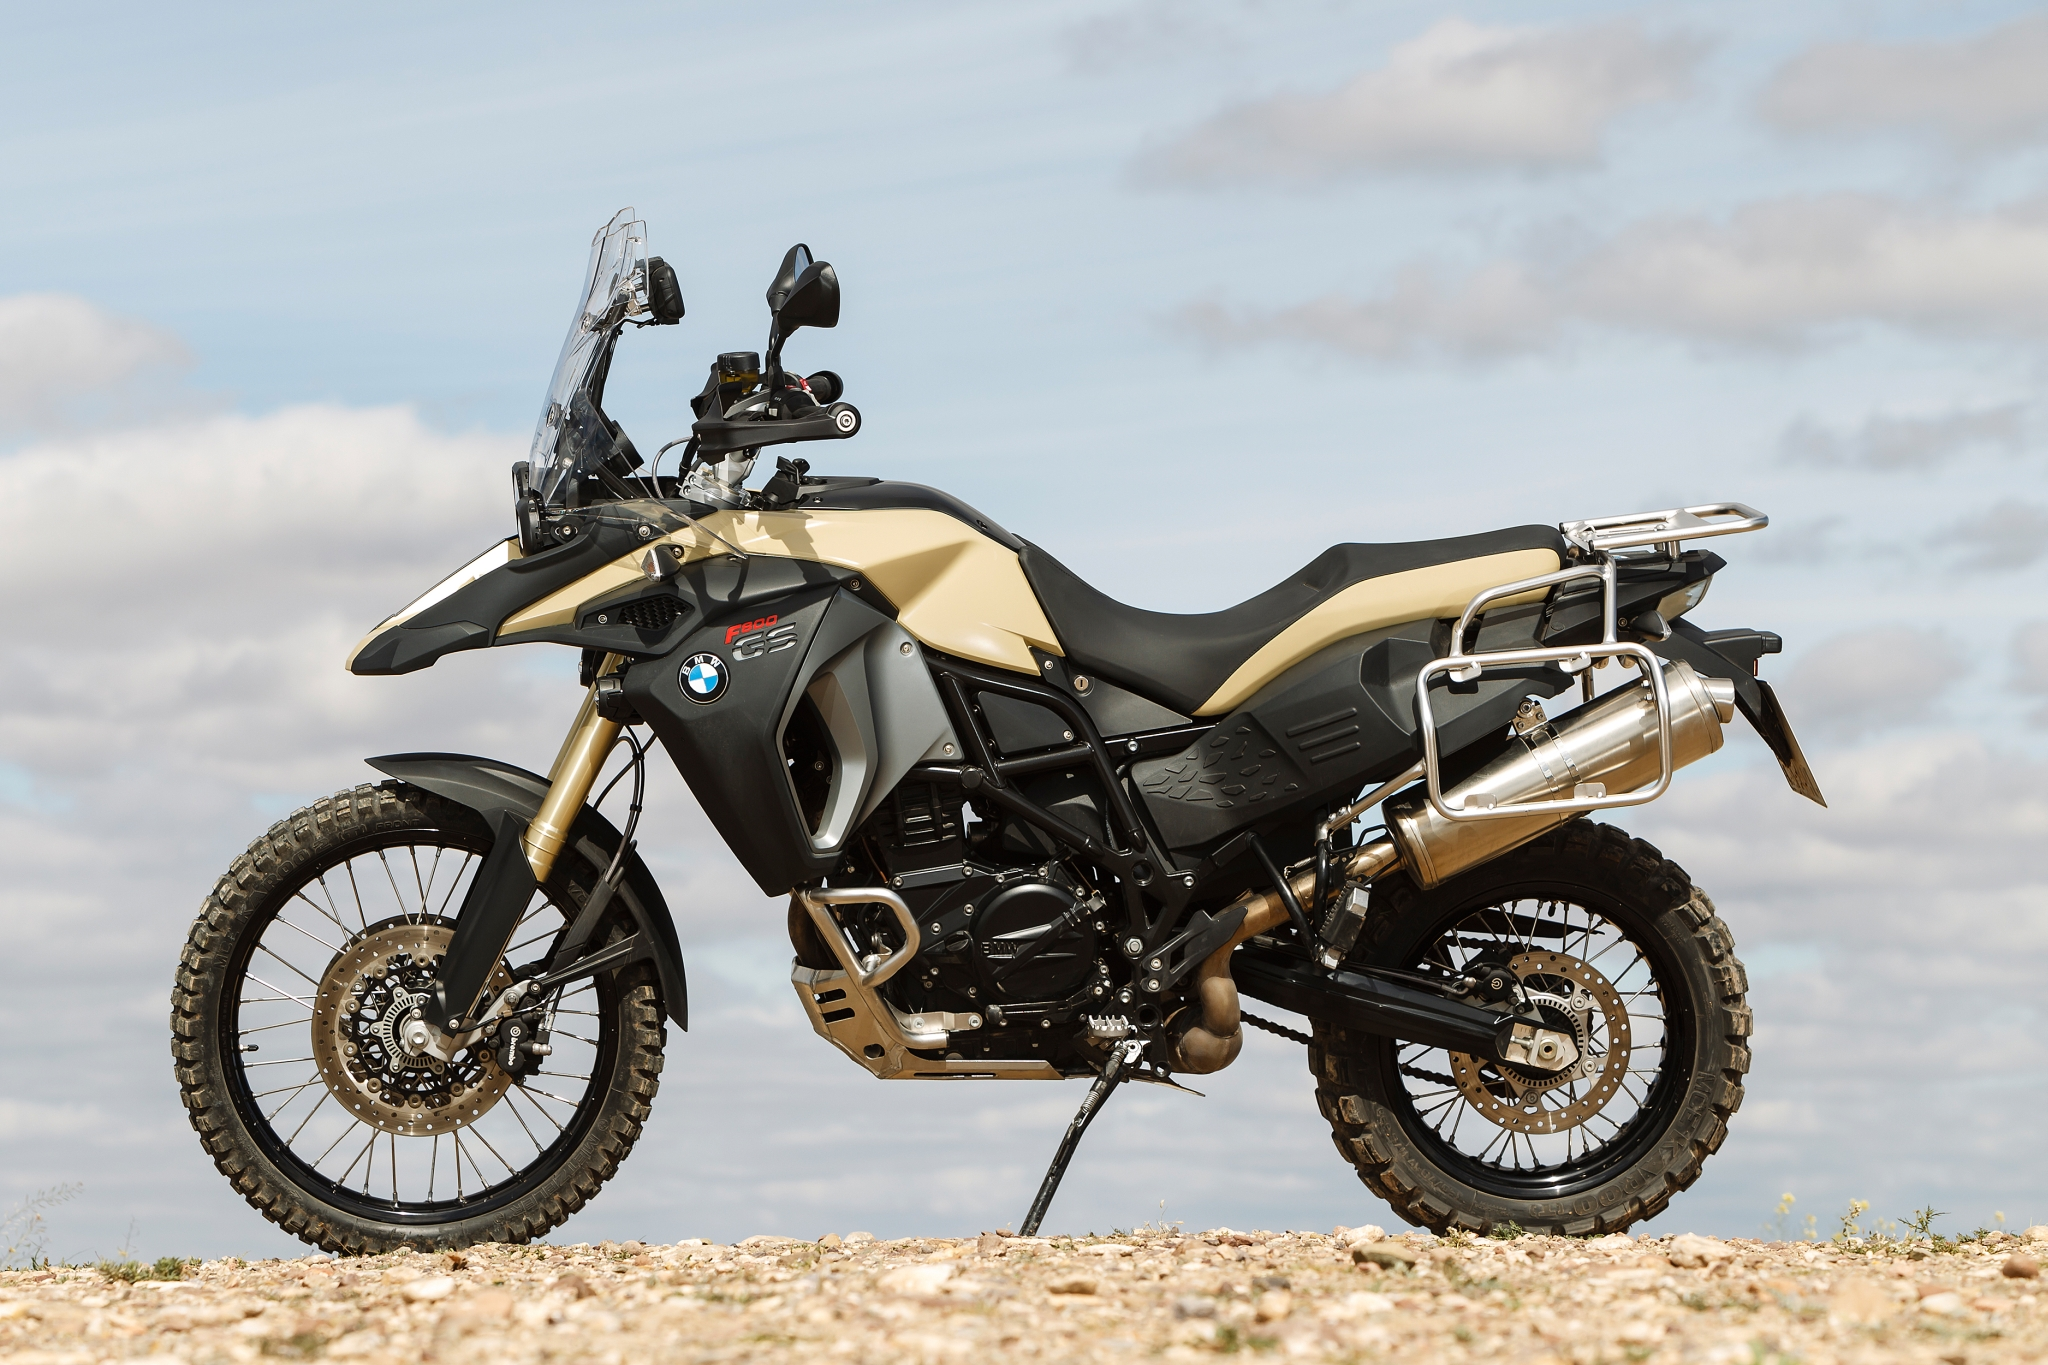 2013 bmw f 800 gs adventure in 88 pictures autoevolution. Black Bedroom Furniture Sets. Home Design Ideas